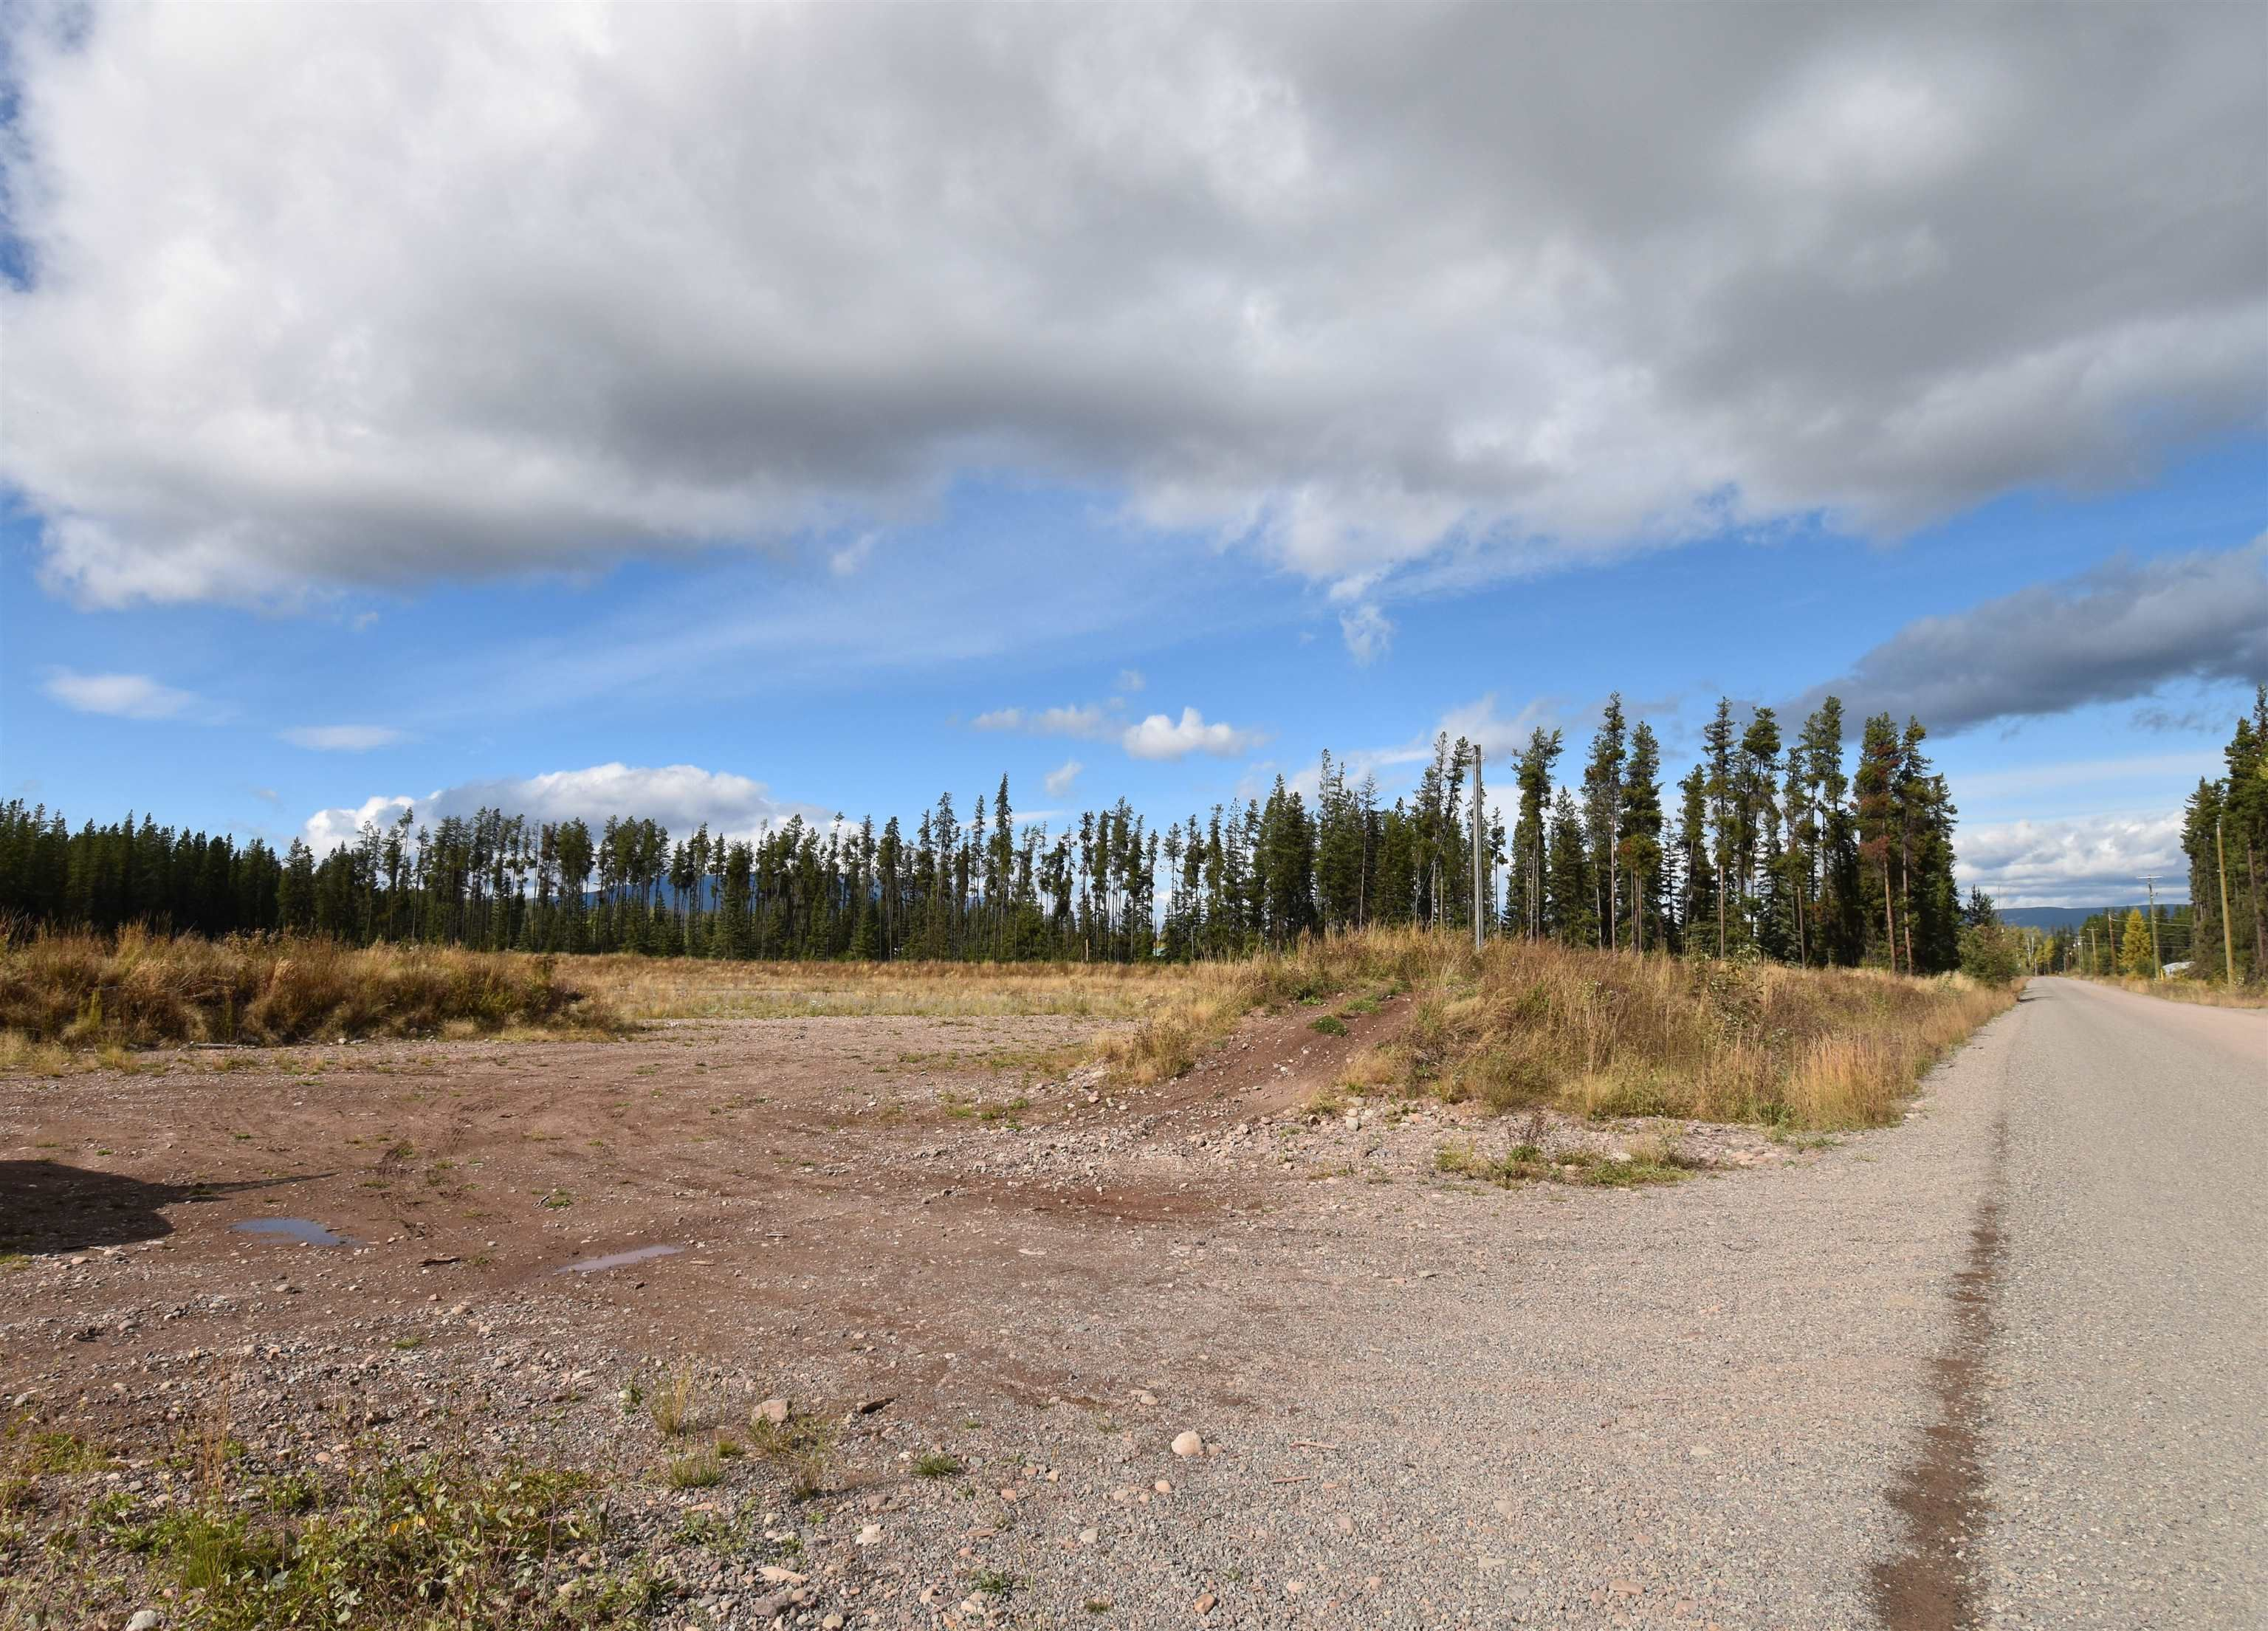 Main Photo: 10955 SKILLHORN Road: Telkwa Land Commercial for sale (Smithers And Area (Zone 54))  : MLS®# C8040361